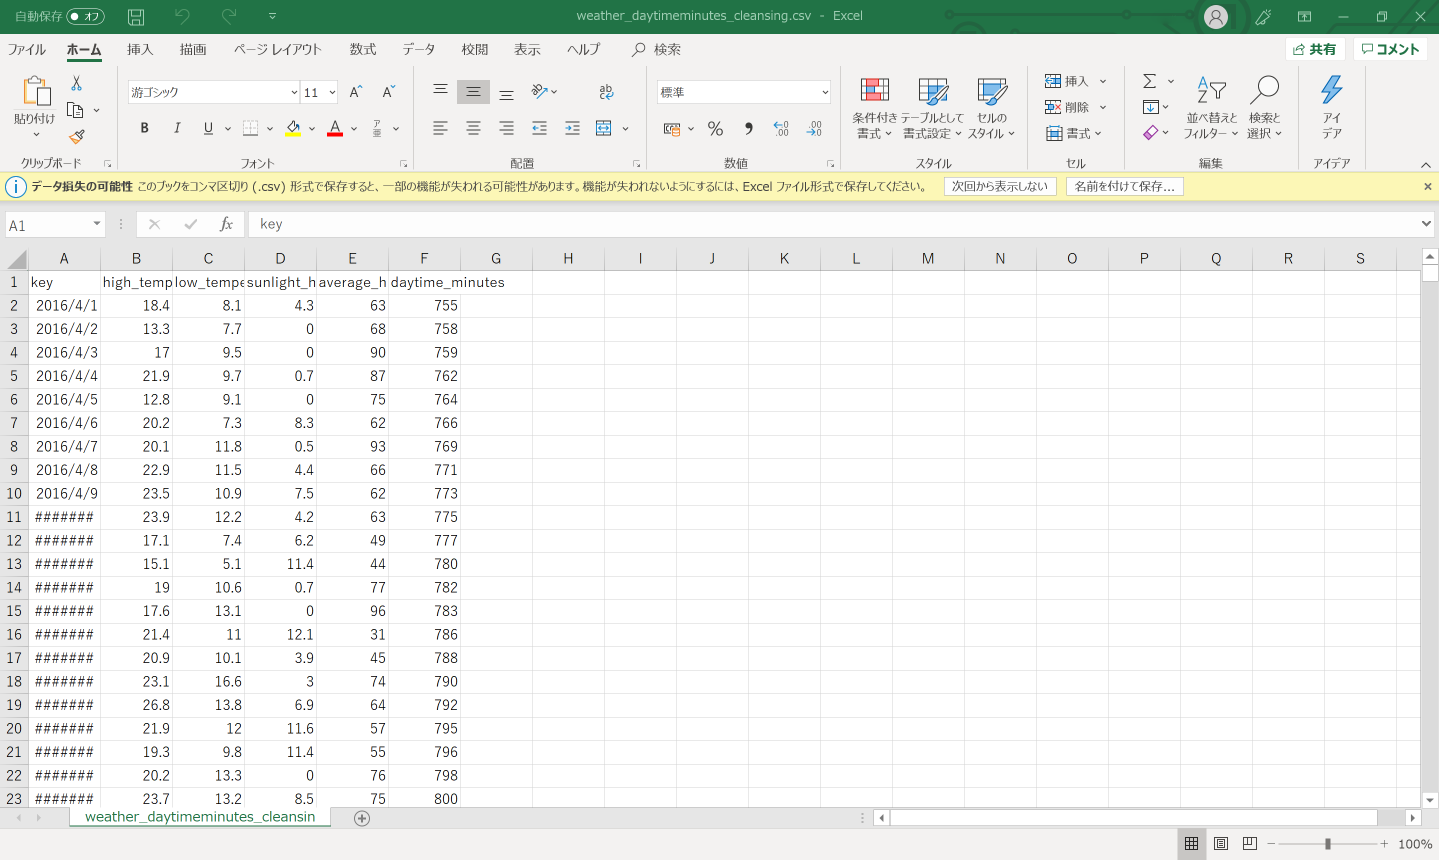 Excel で weather_daytimeminutes_cleansing.csv ファイルを開いた様子